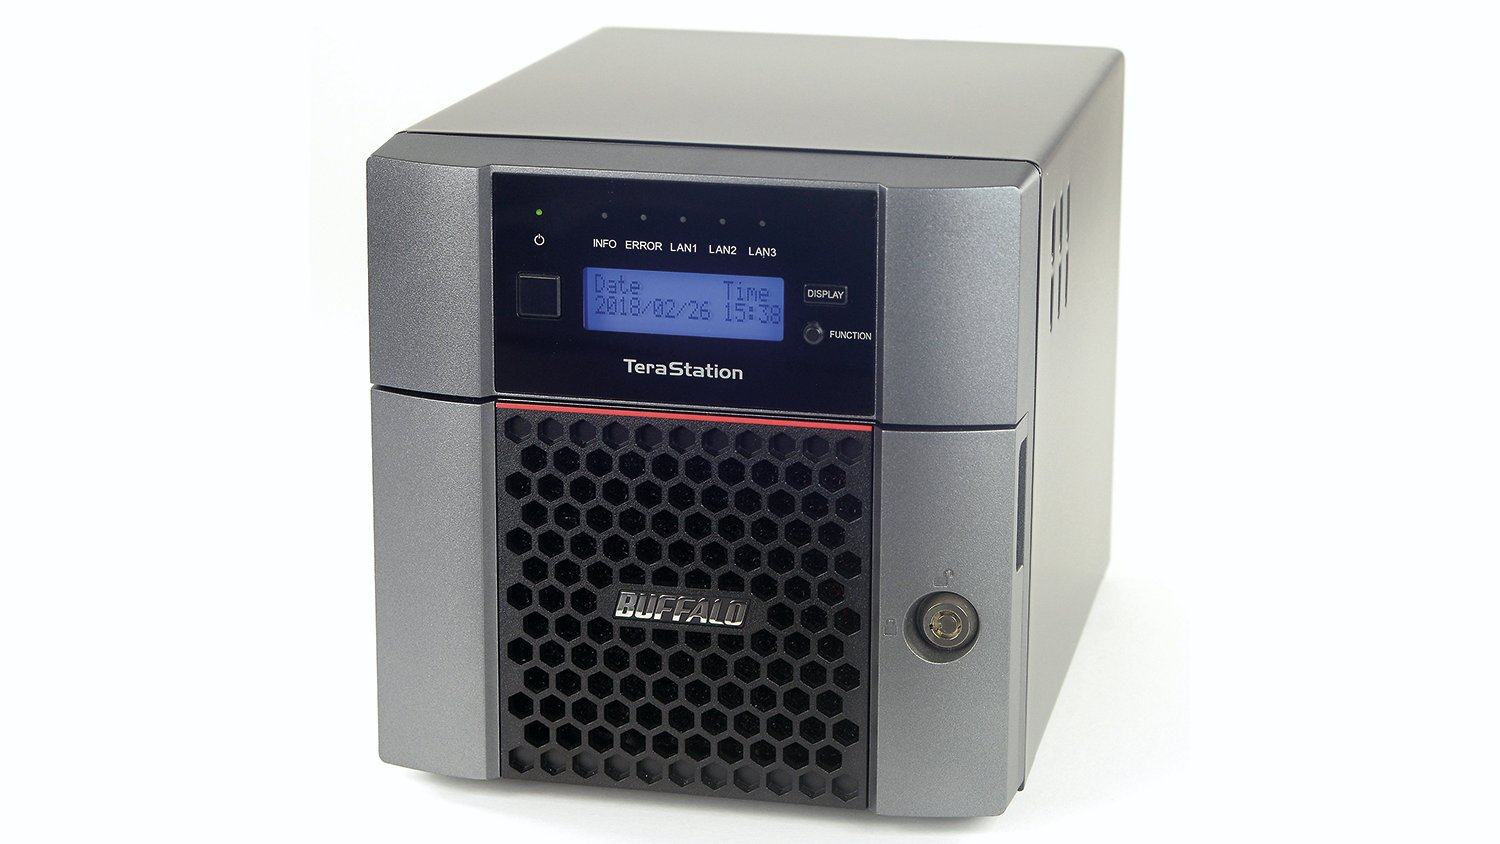 Buffalo TeraStation 5210DN review: An extremely fast NAS | Expert